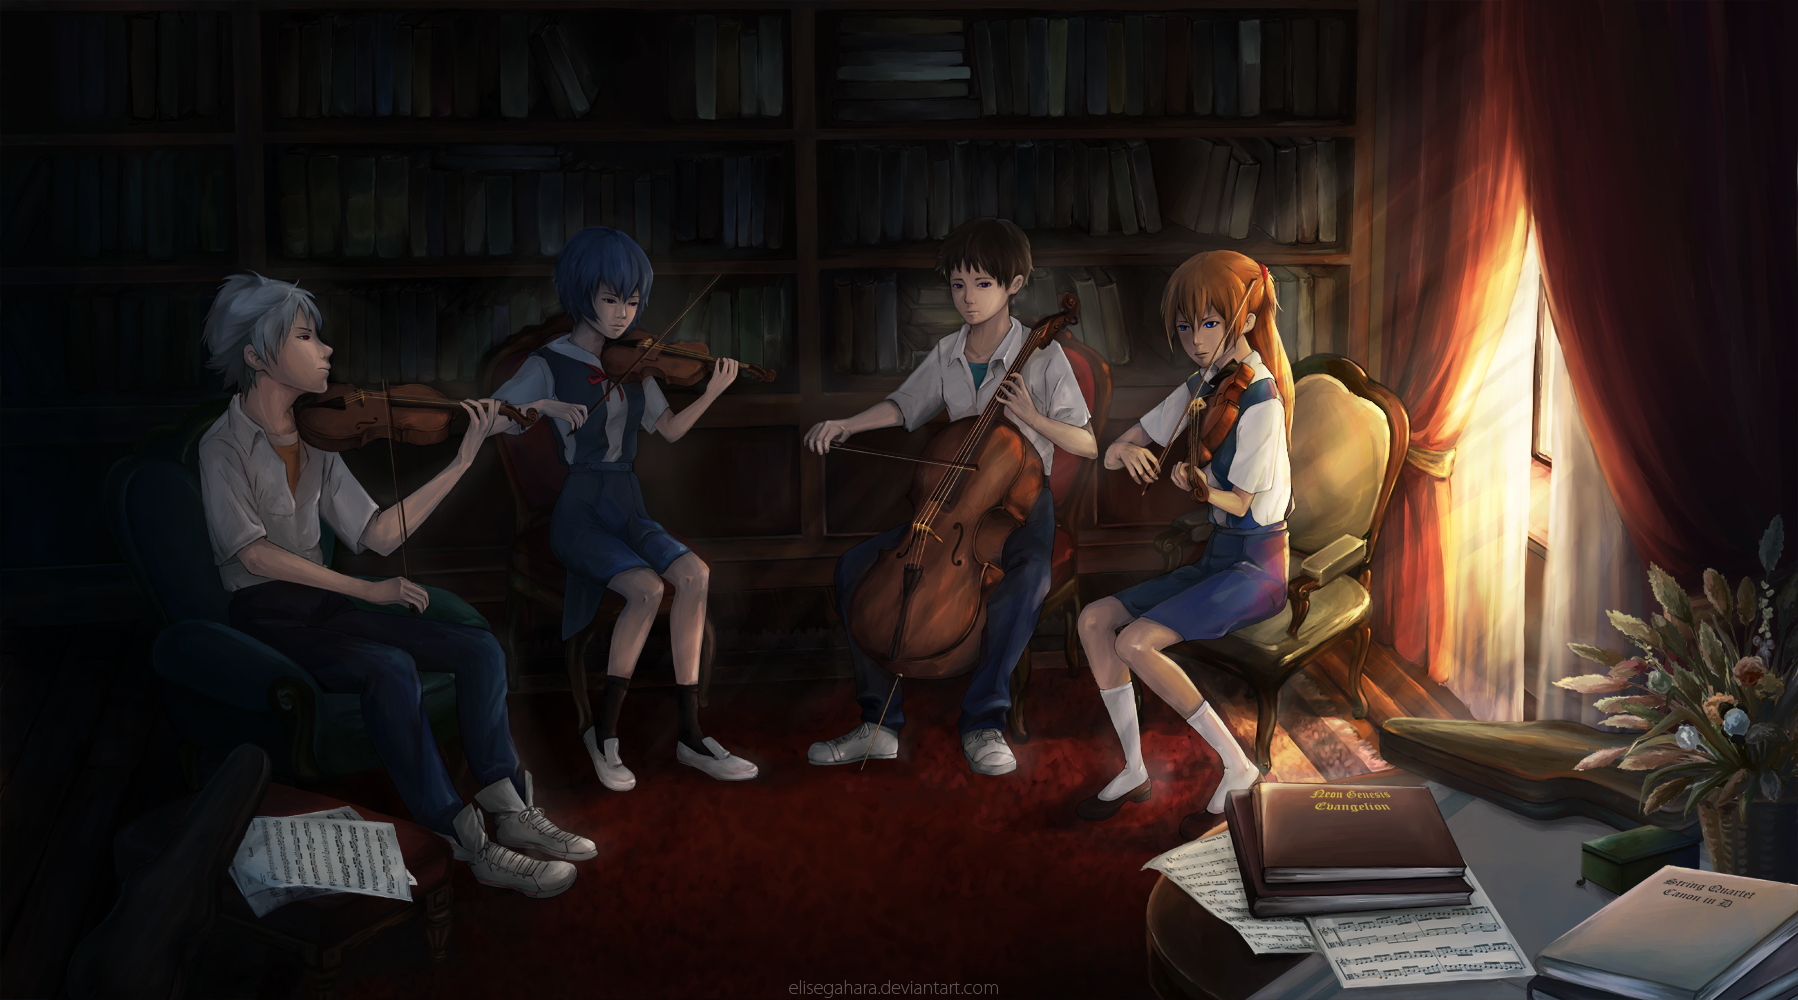 STRING QUARTET: Canon in D by elisegahara